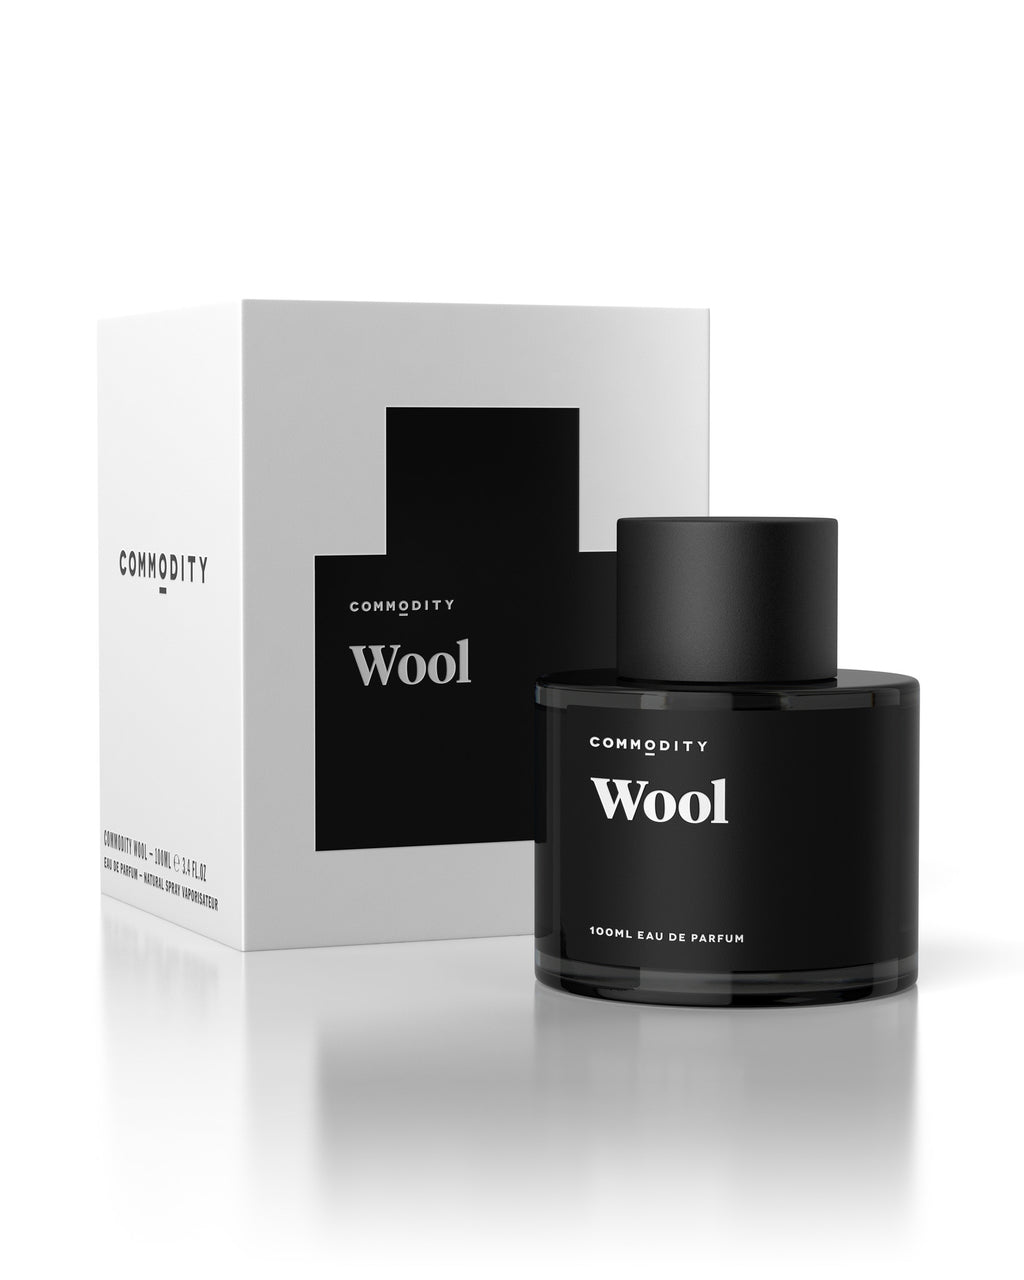 Commodity Wool 100ml EDP